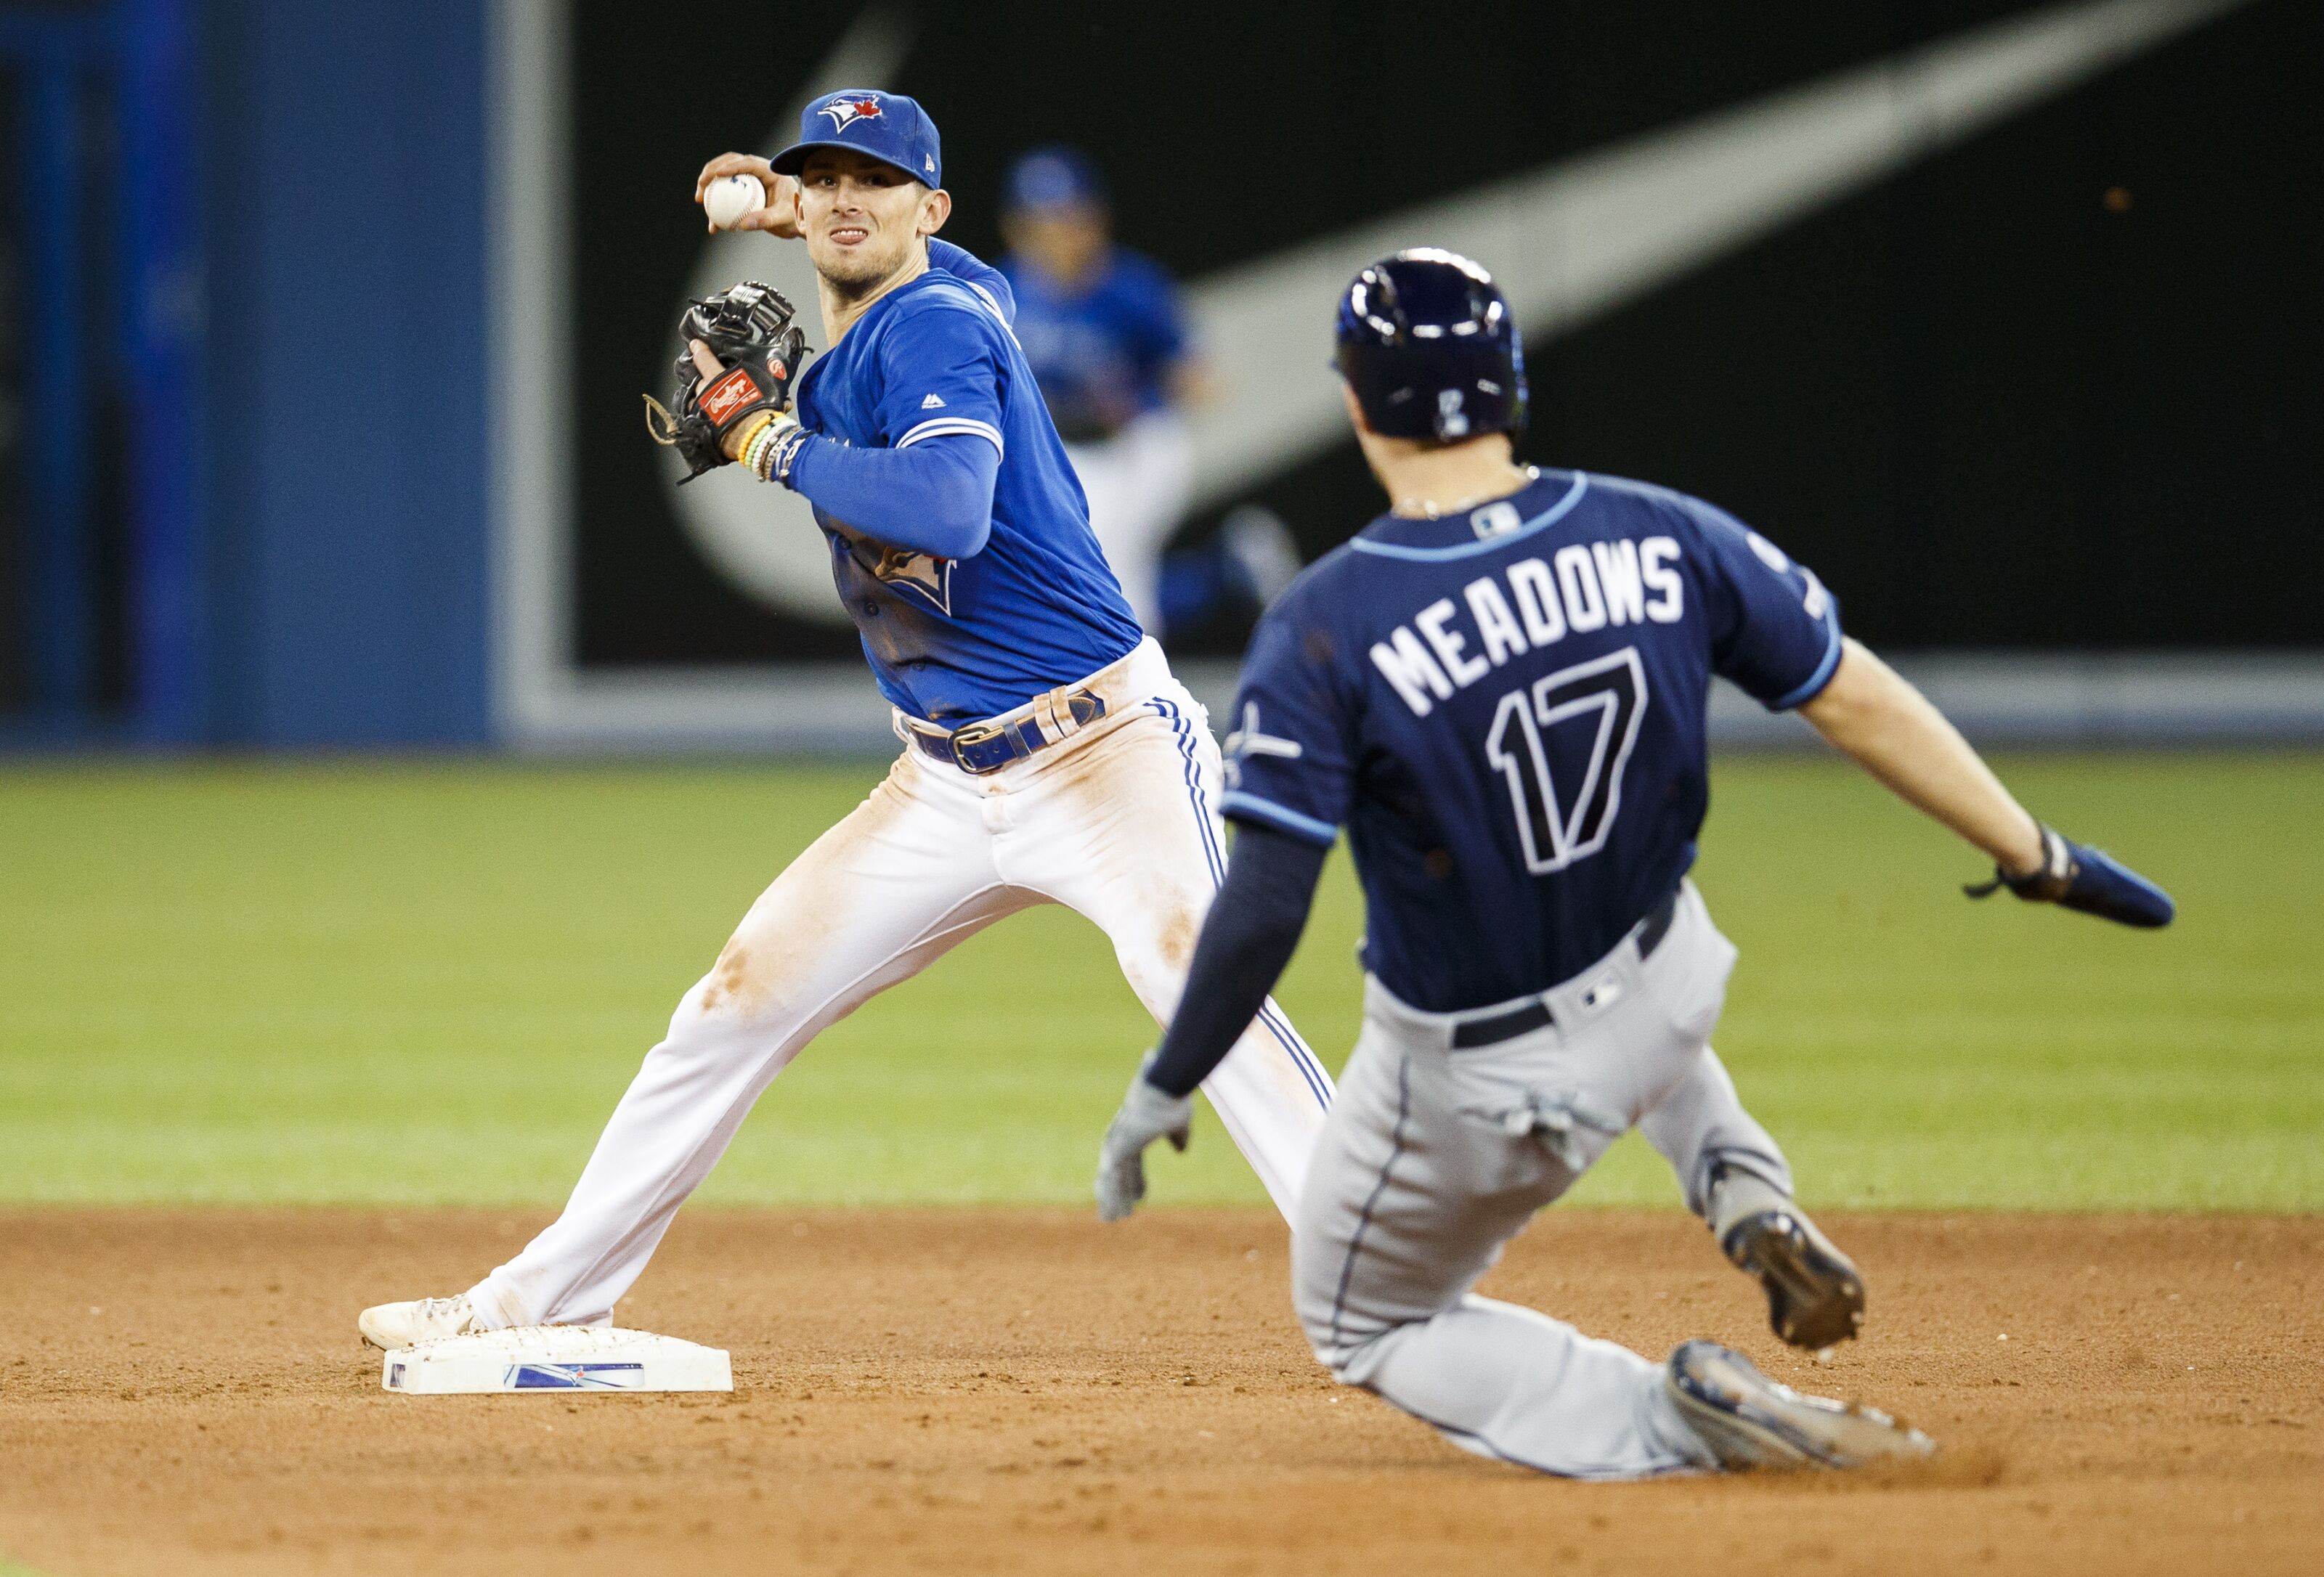 Blue Jays: How Well do Blue Jays Infielders Stack Up According to StatCast